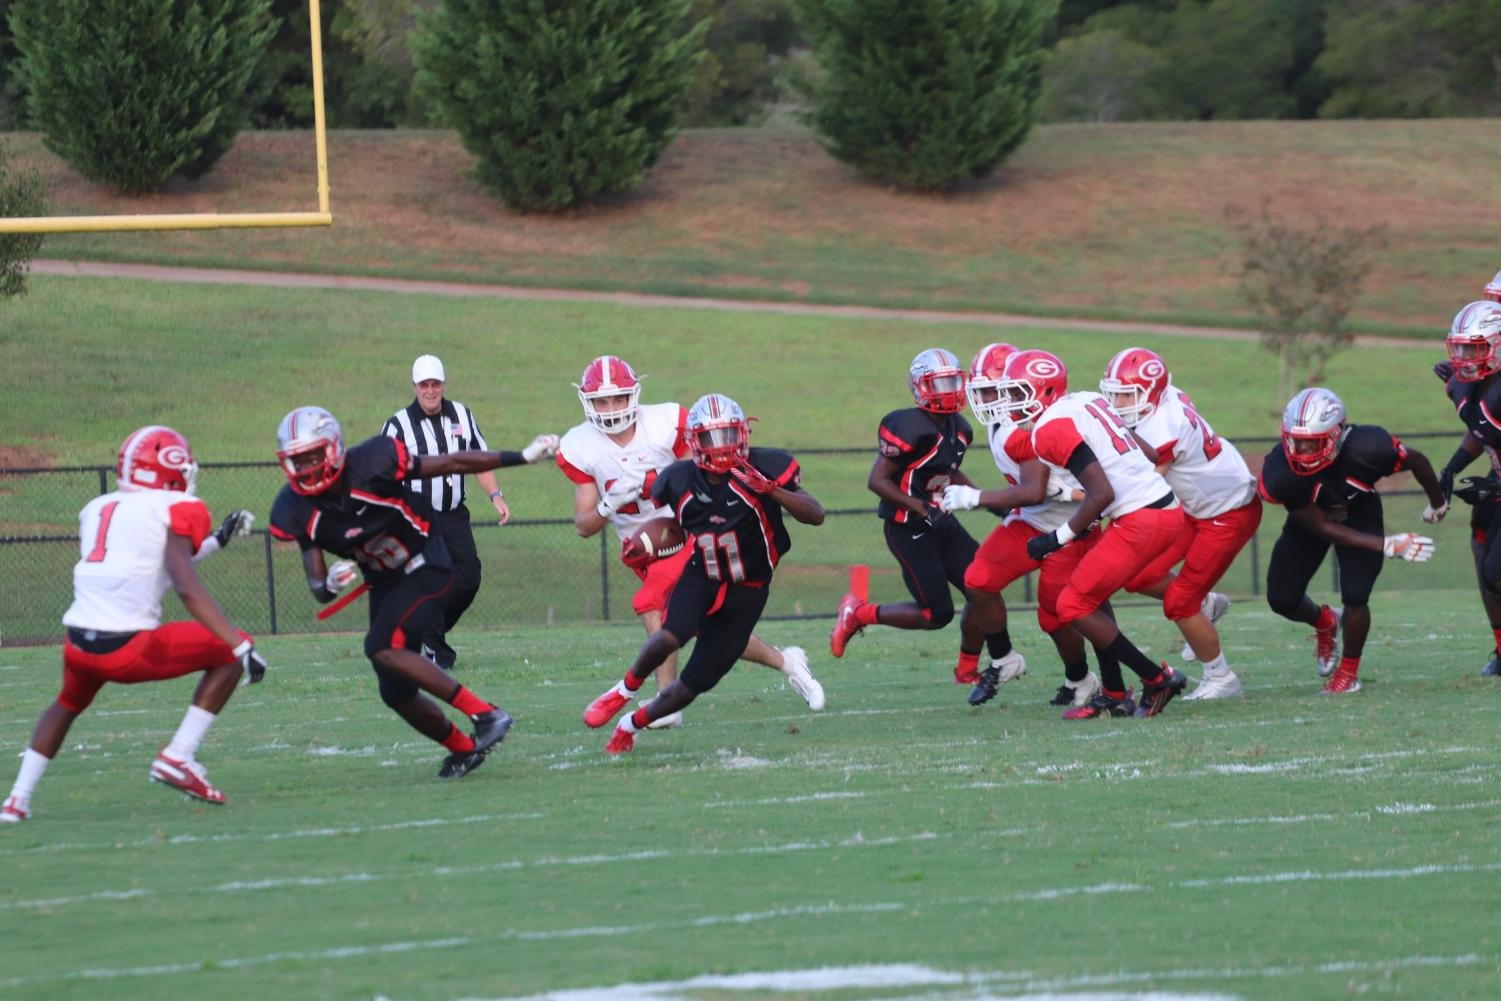 WR Travis Foster runs the ball towards the endzone.